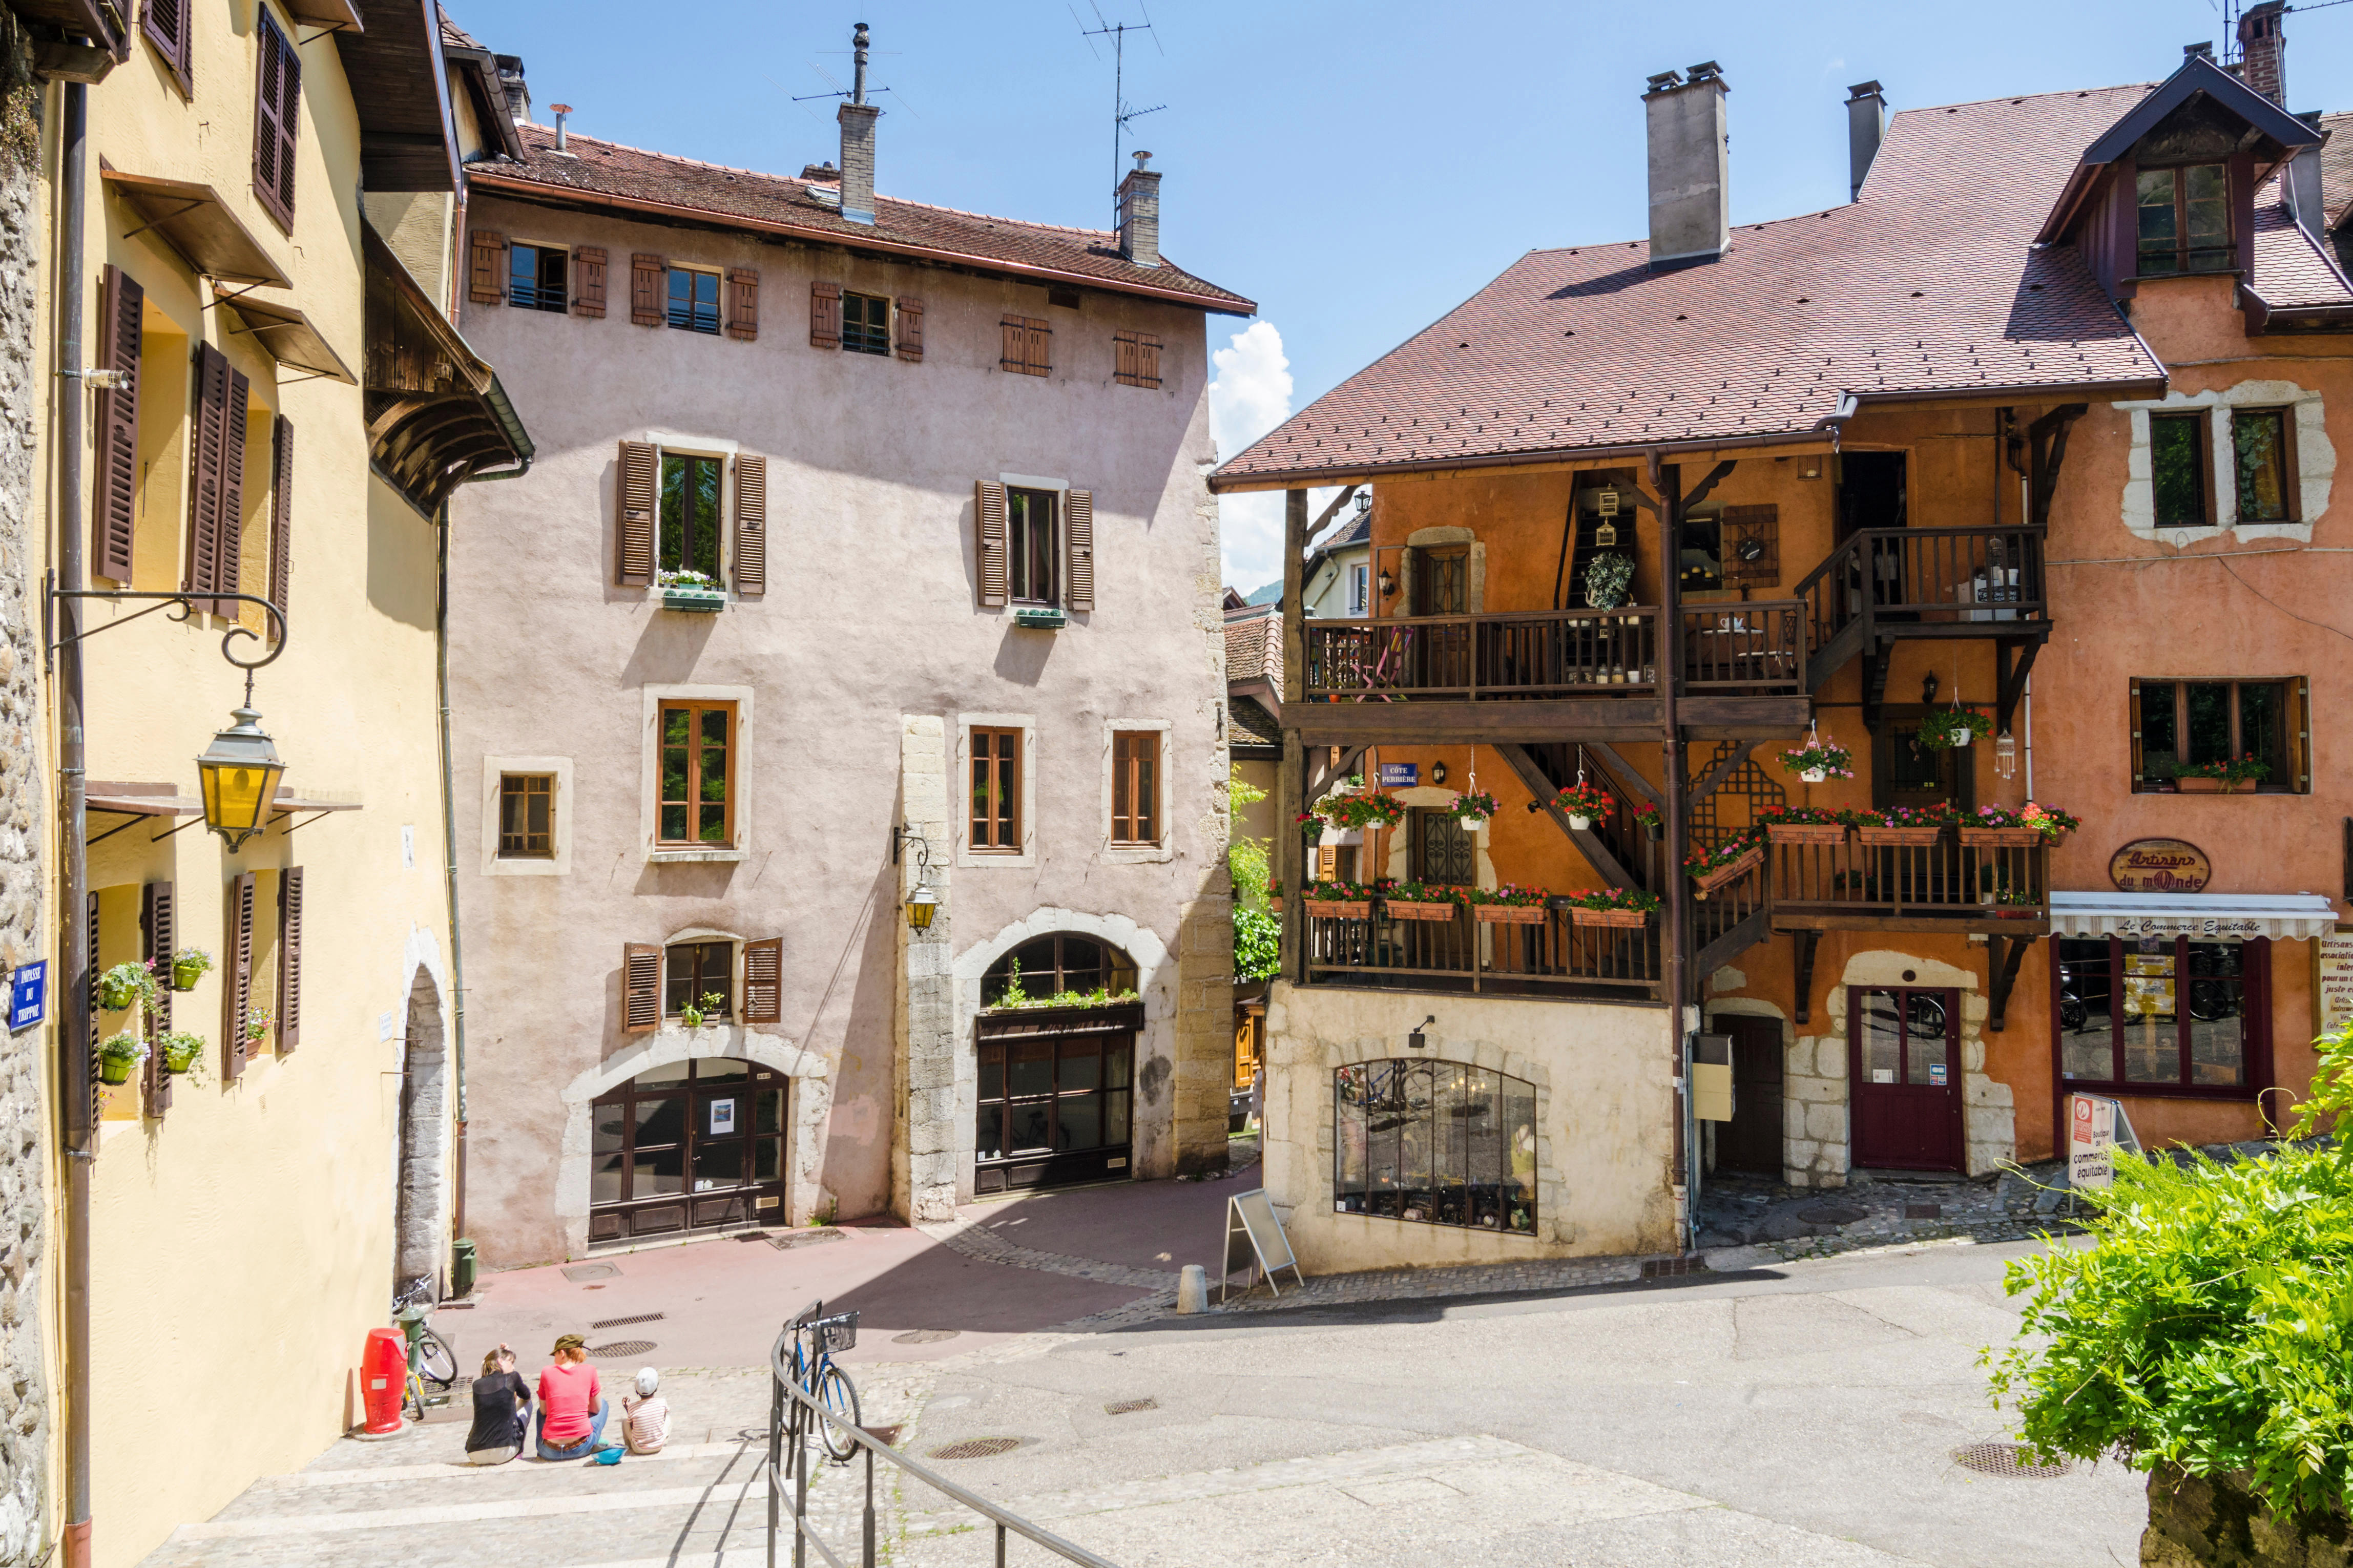 Buildings in the old town of Annecy, Haute-Savoie, Rhone-Alpes, France. Image shot 2013. Exact date unknown.